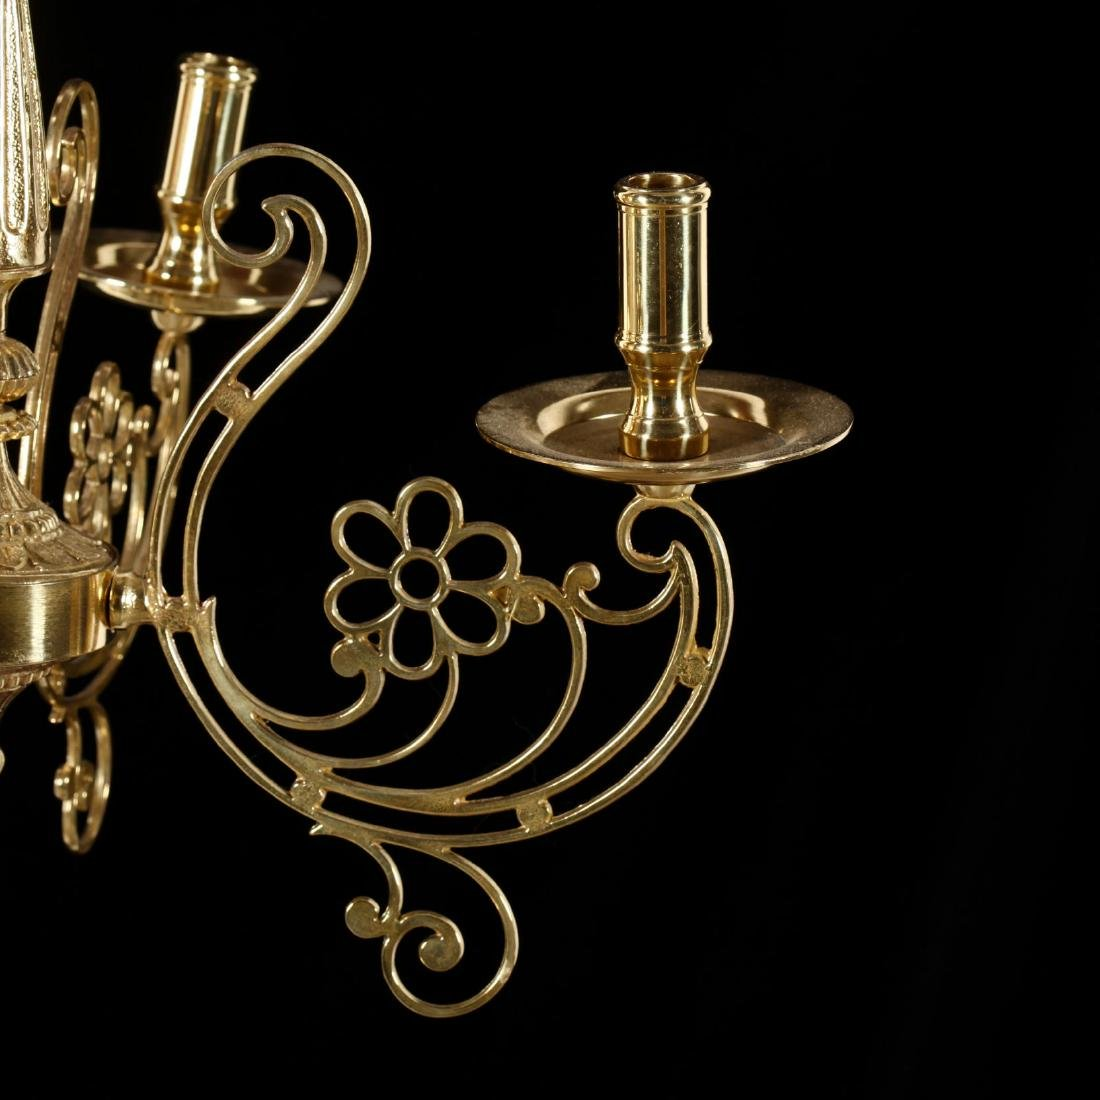 Contemporary Four-Arm Brass Chandelier - 3